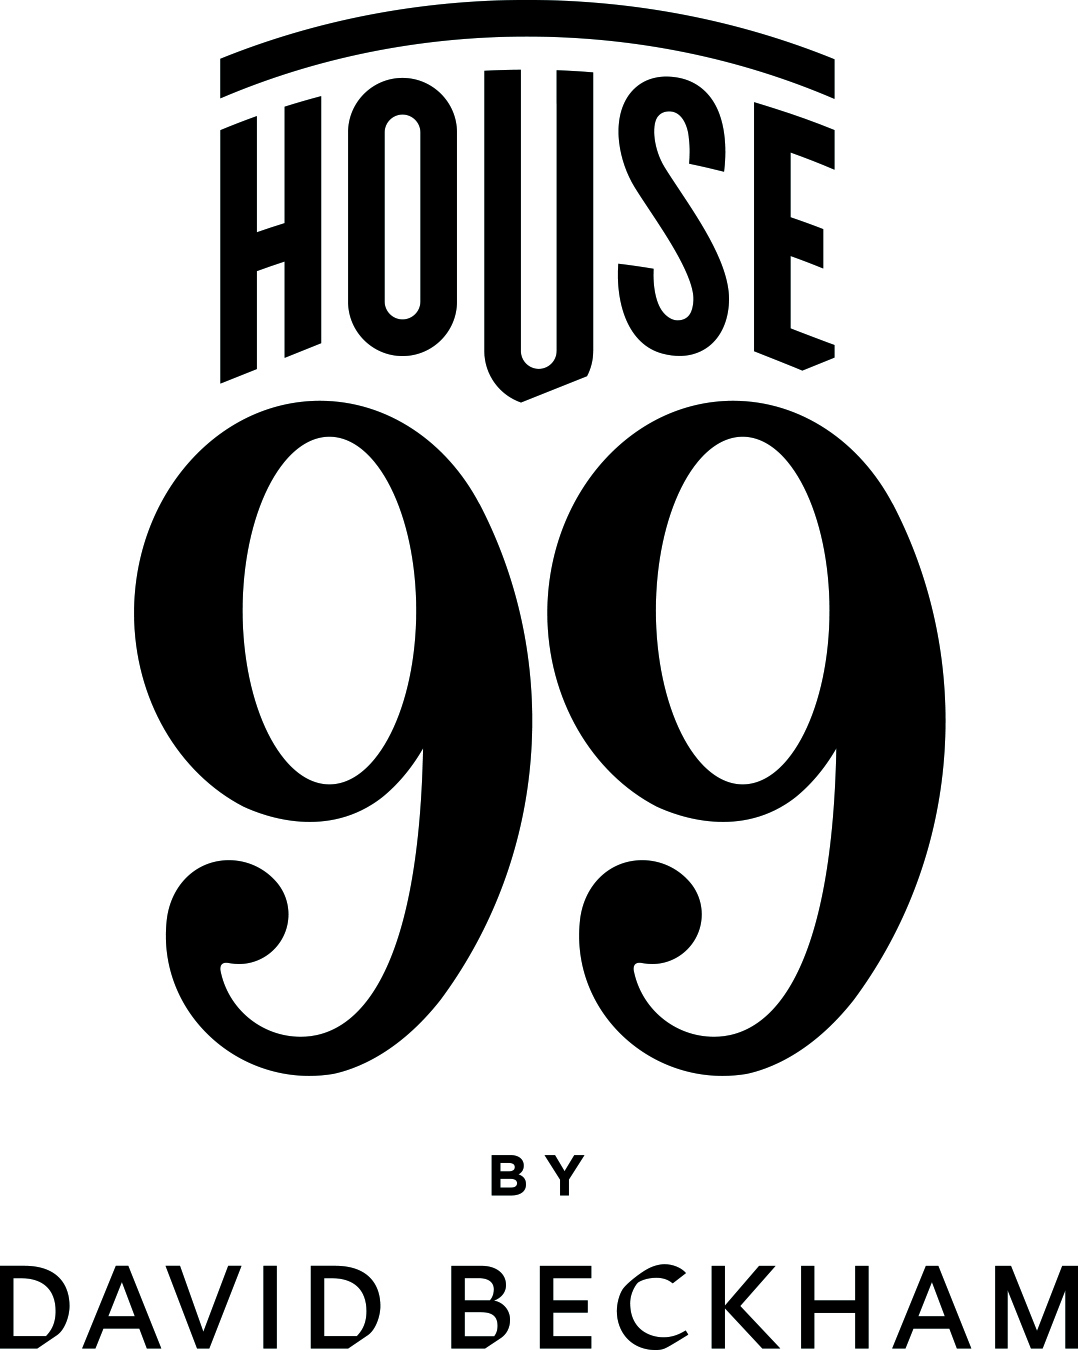 House99 by David Beckham